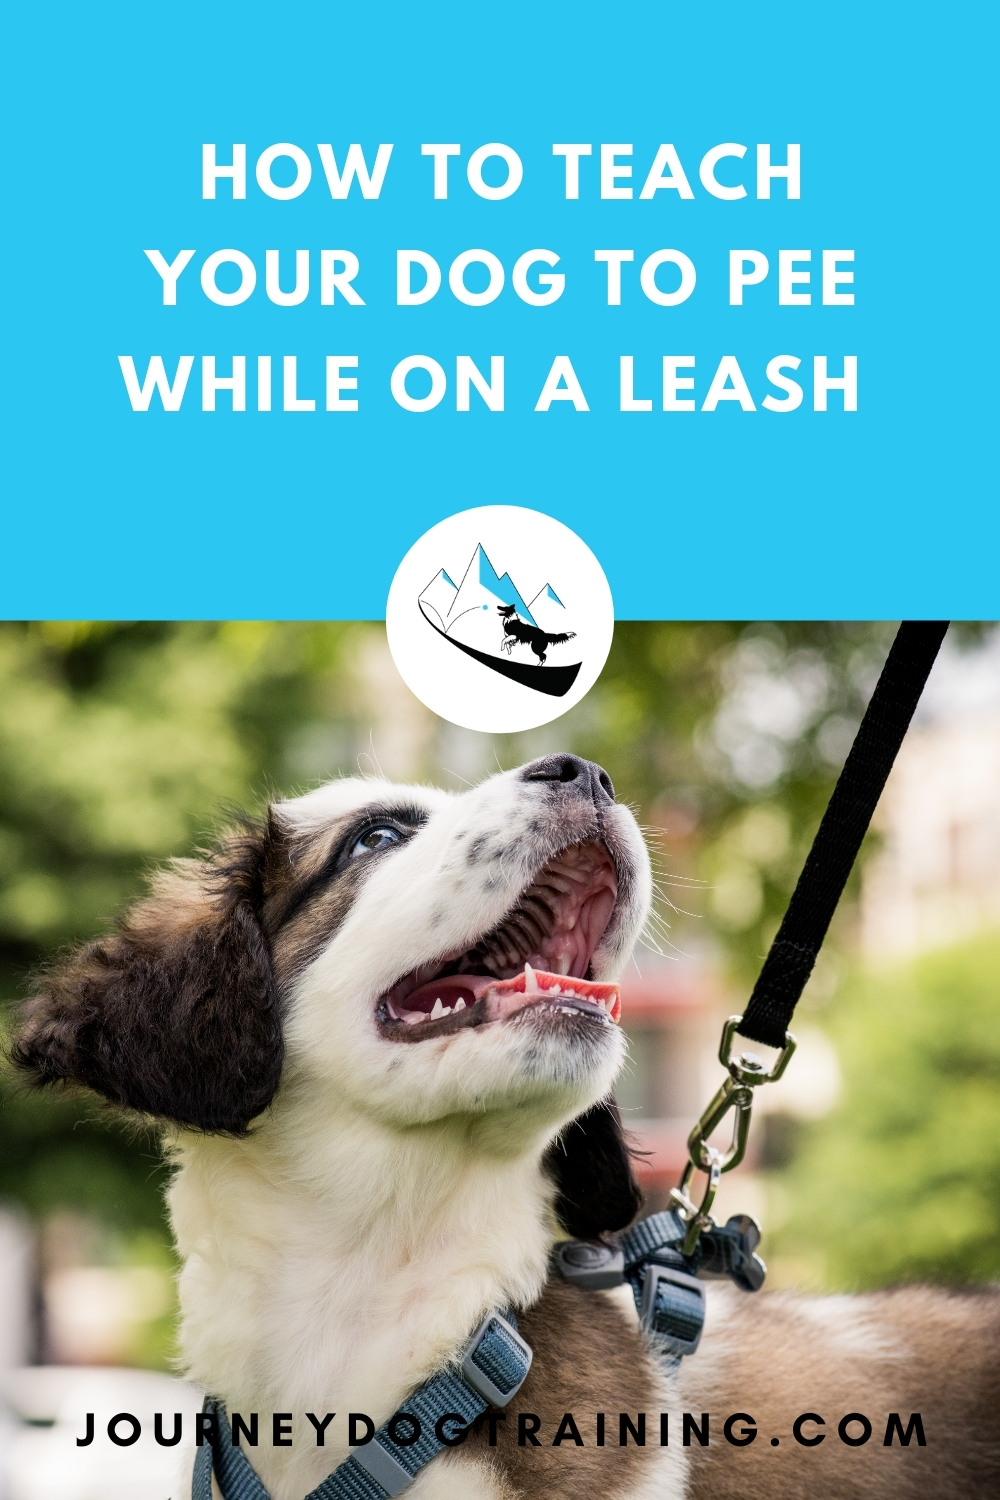 how to teach your dog to pee while on a leash | journeydogtraining.com